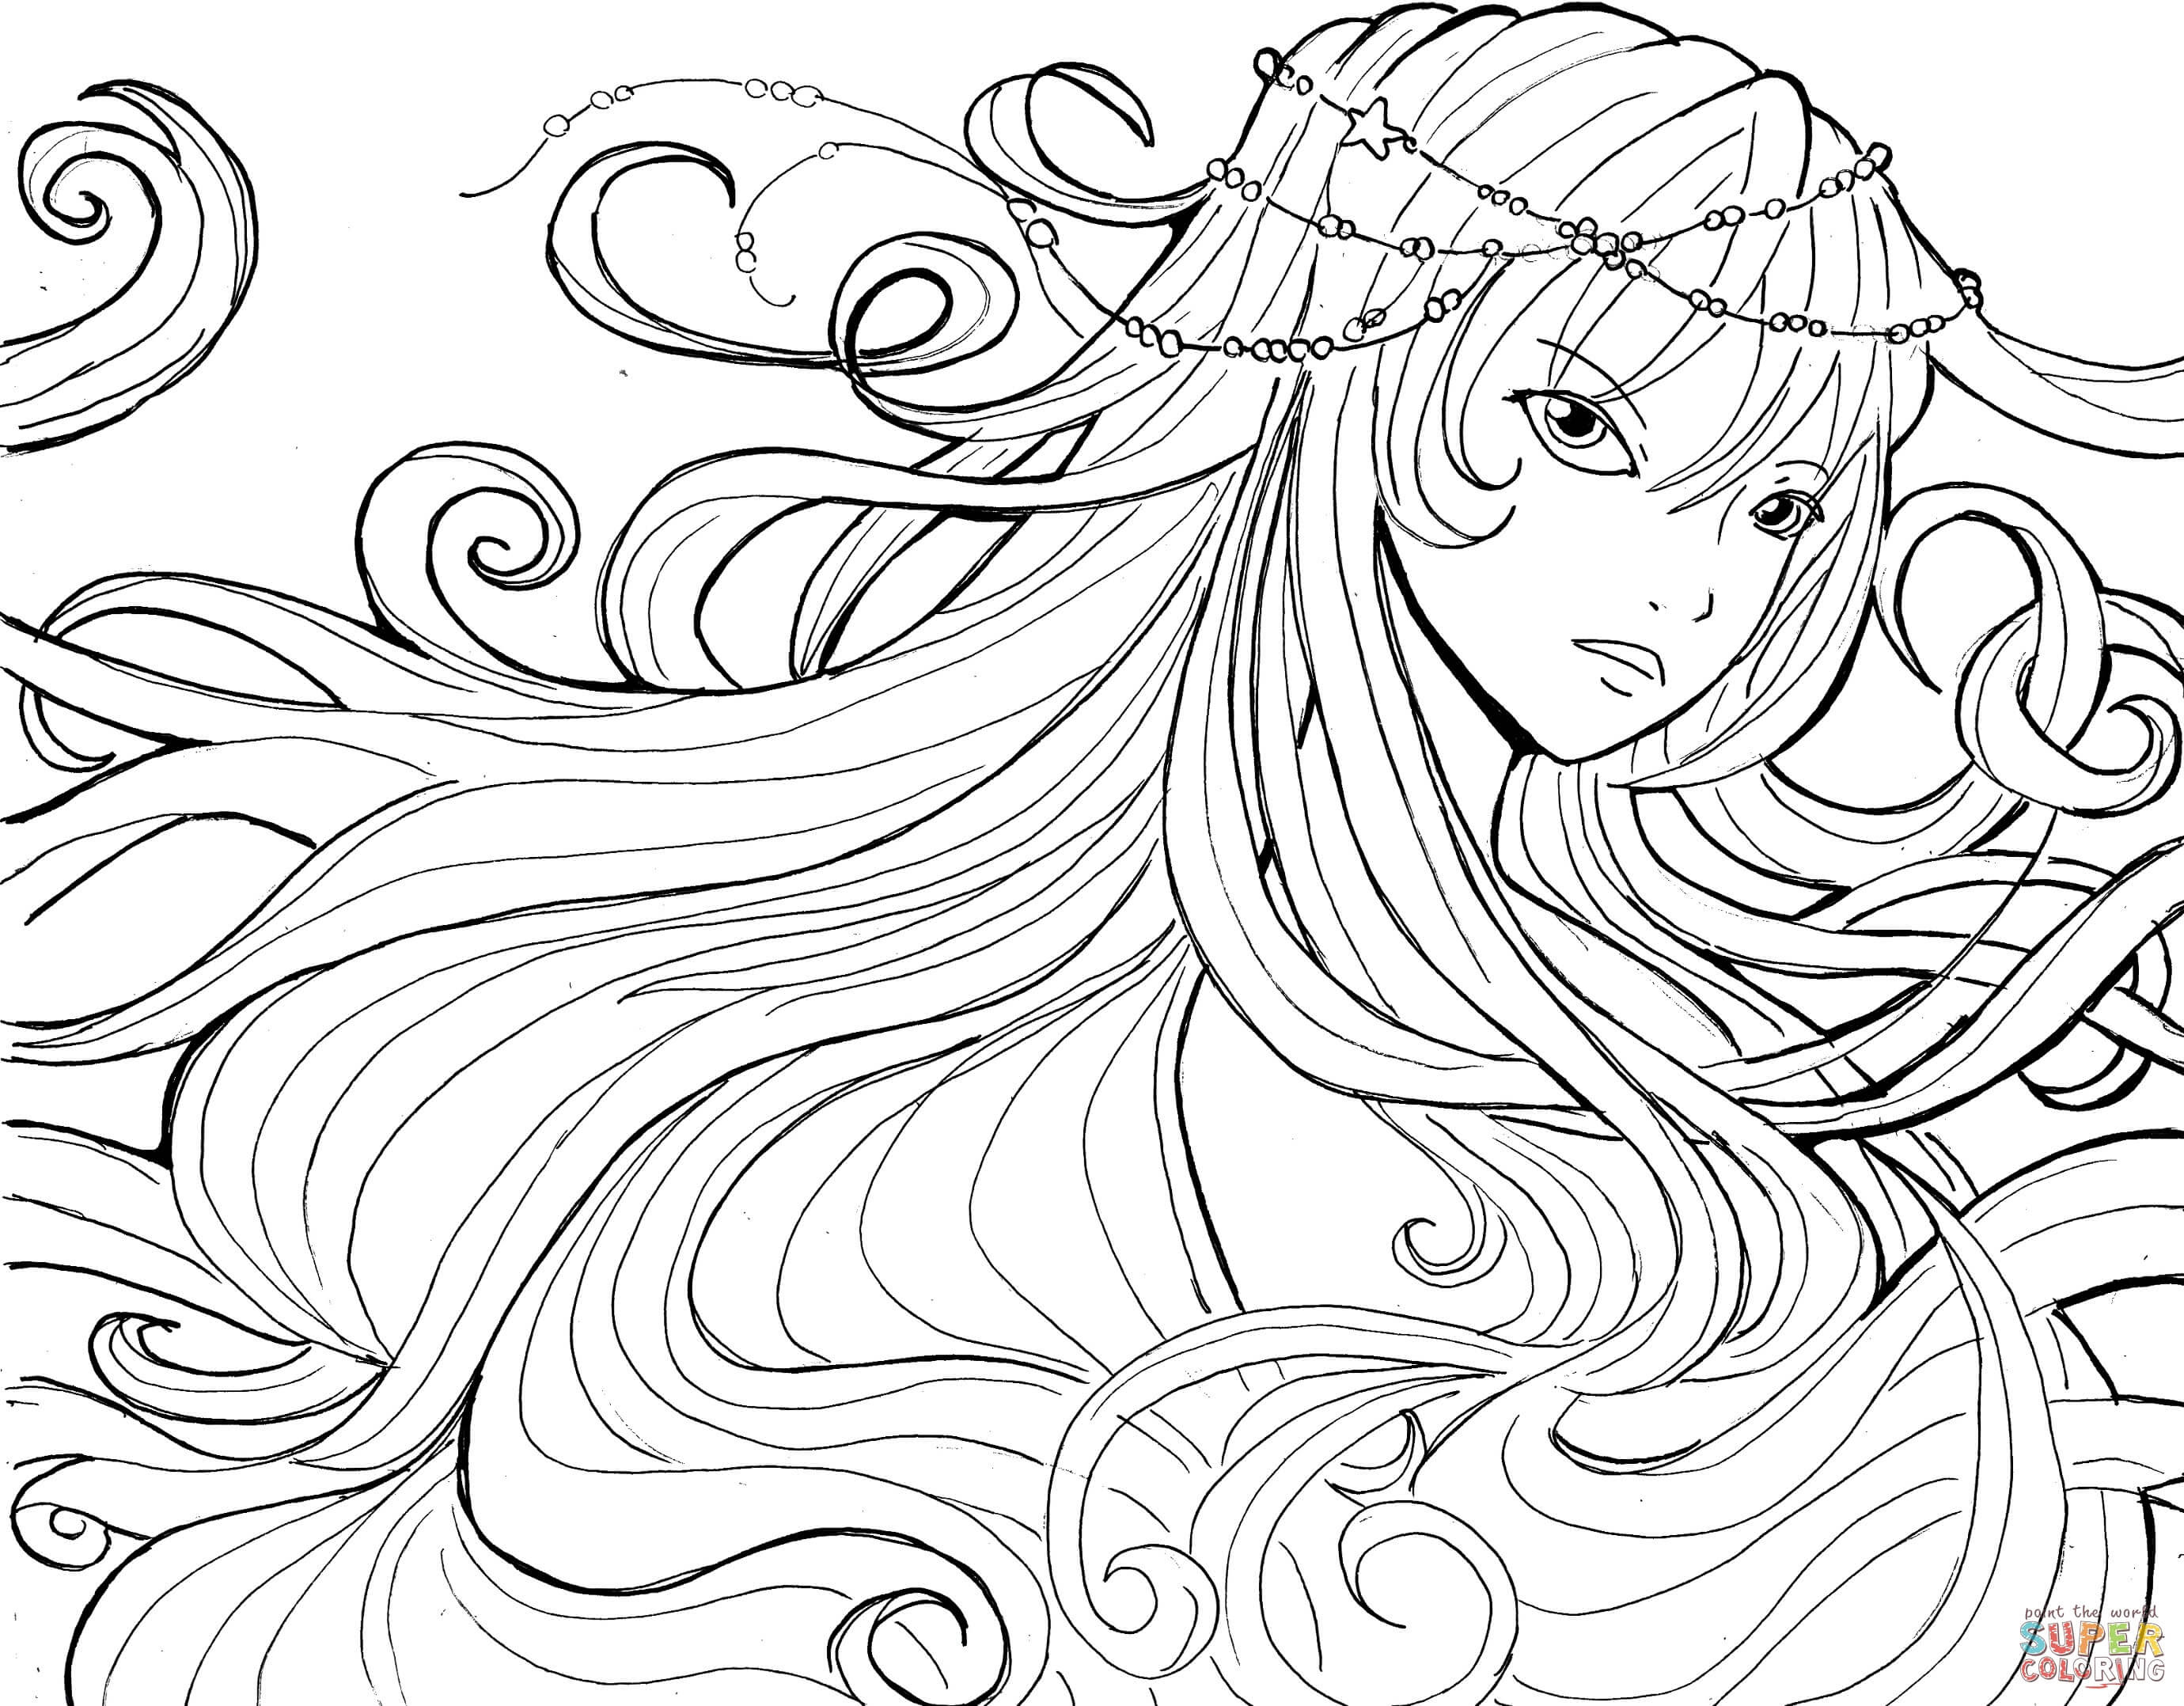 Magi Anime Coloring Pages